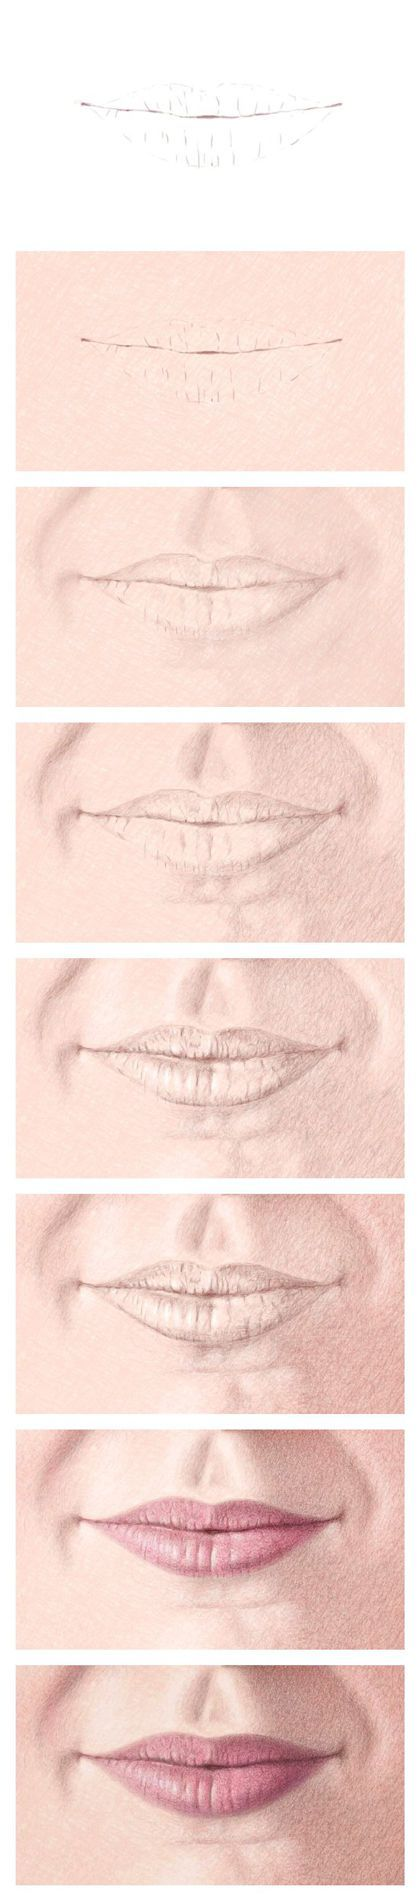 Drawing the Mouth with Color Pencils – Steps 1-8